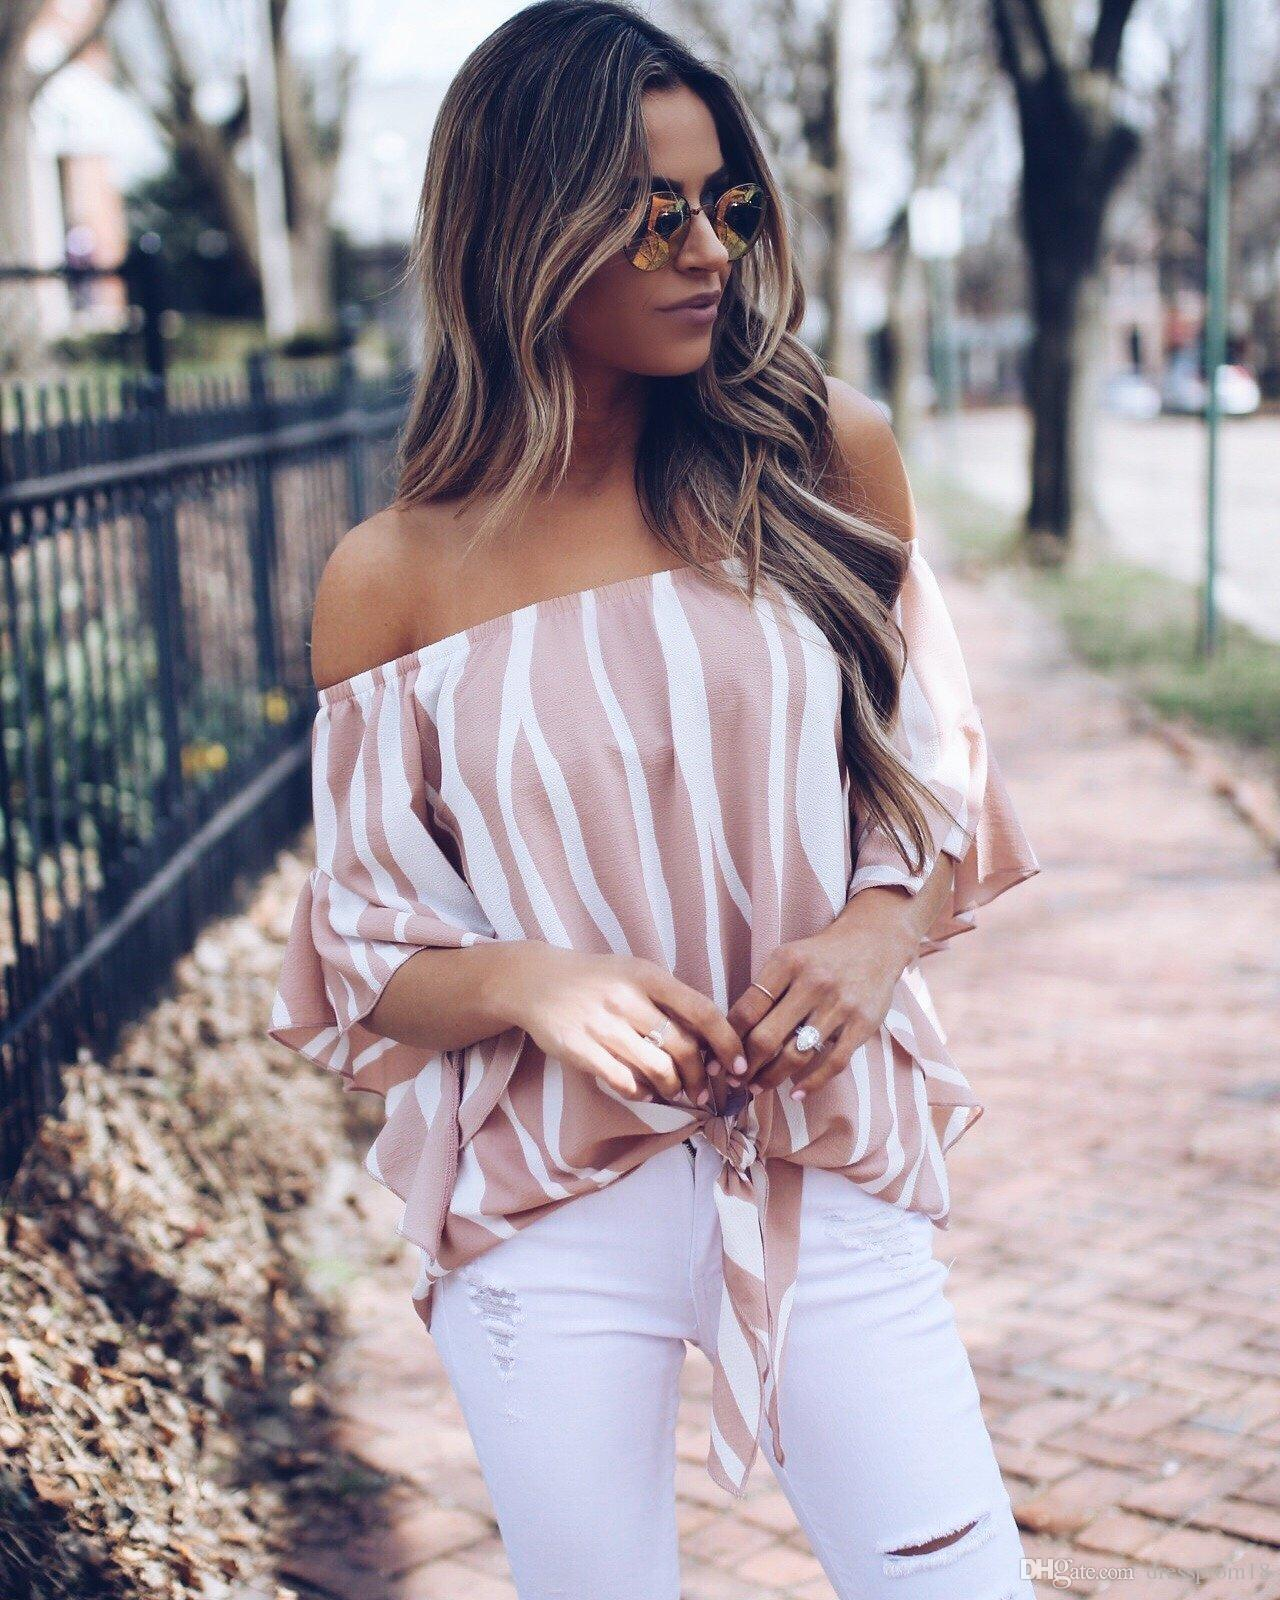 626bb061246 2019 Womens Sexy Off Shoulder Two Tone Striped Tops Elasticized Neckline  Knotted Tie Front Hem Shirt Blouse For Summer From Dressprom18, $14.58 |  DHgate.Com